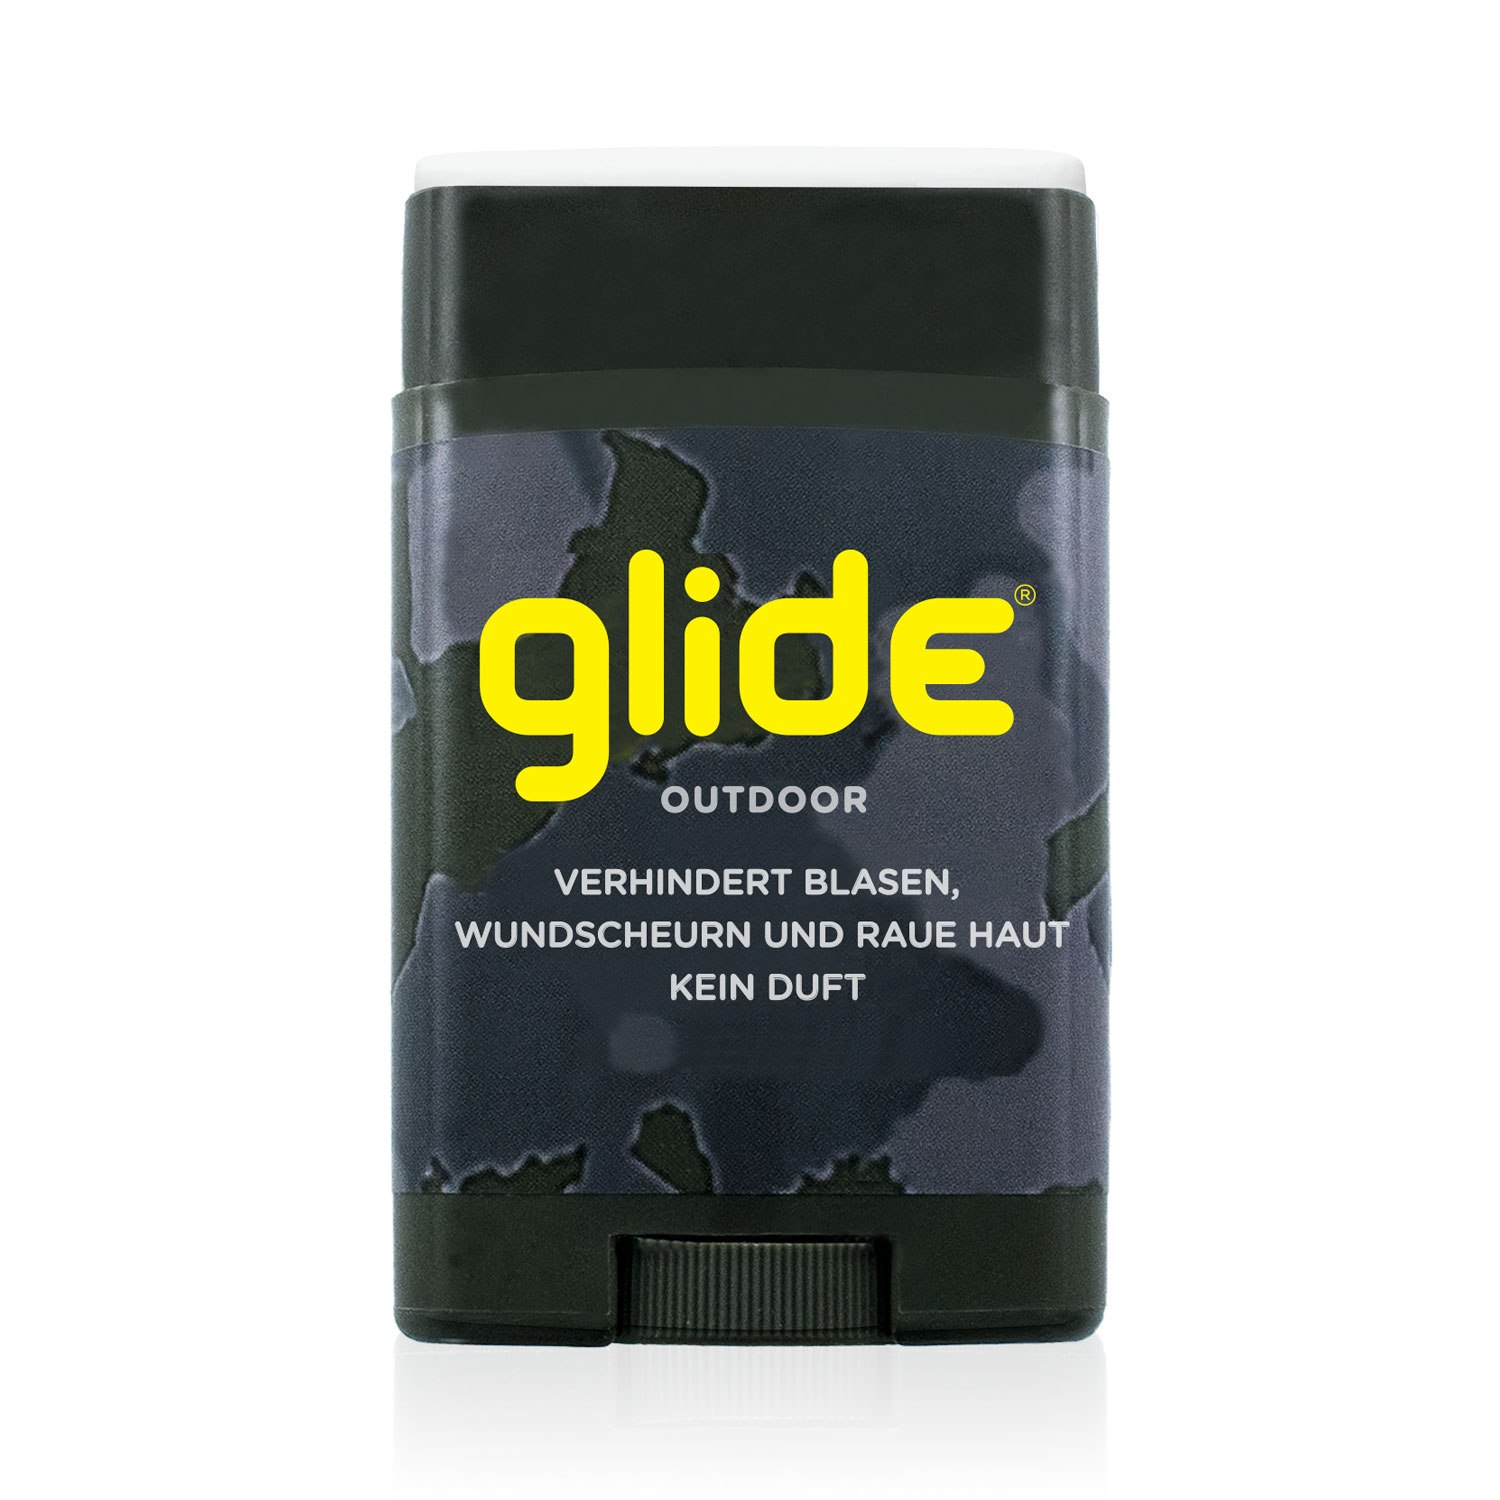 body glide Outdoor Stick - Anti Chafing/Anti Blister Balm - 42g